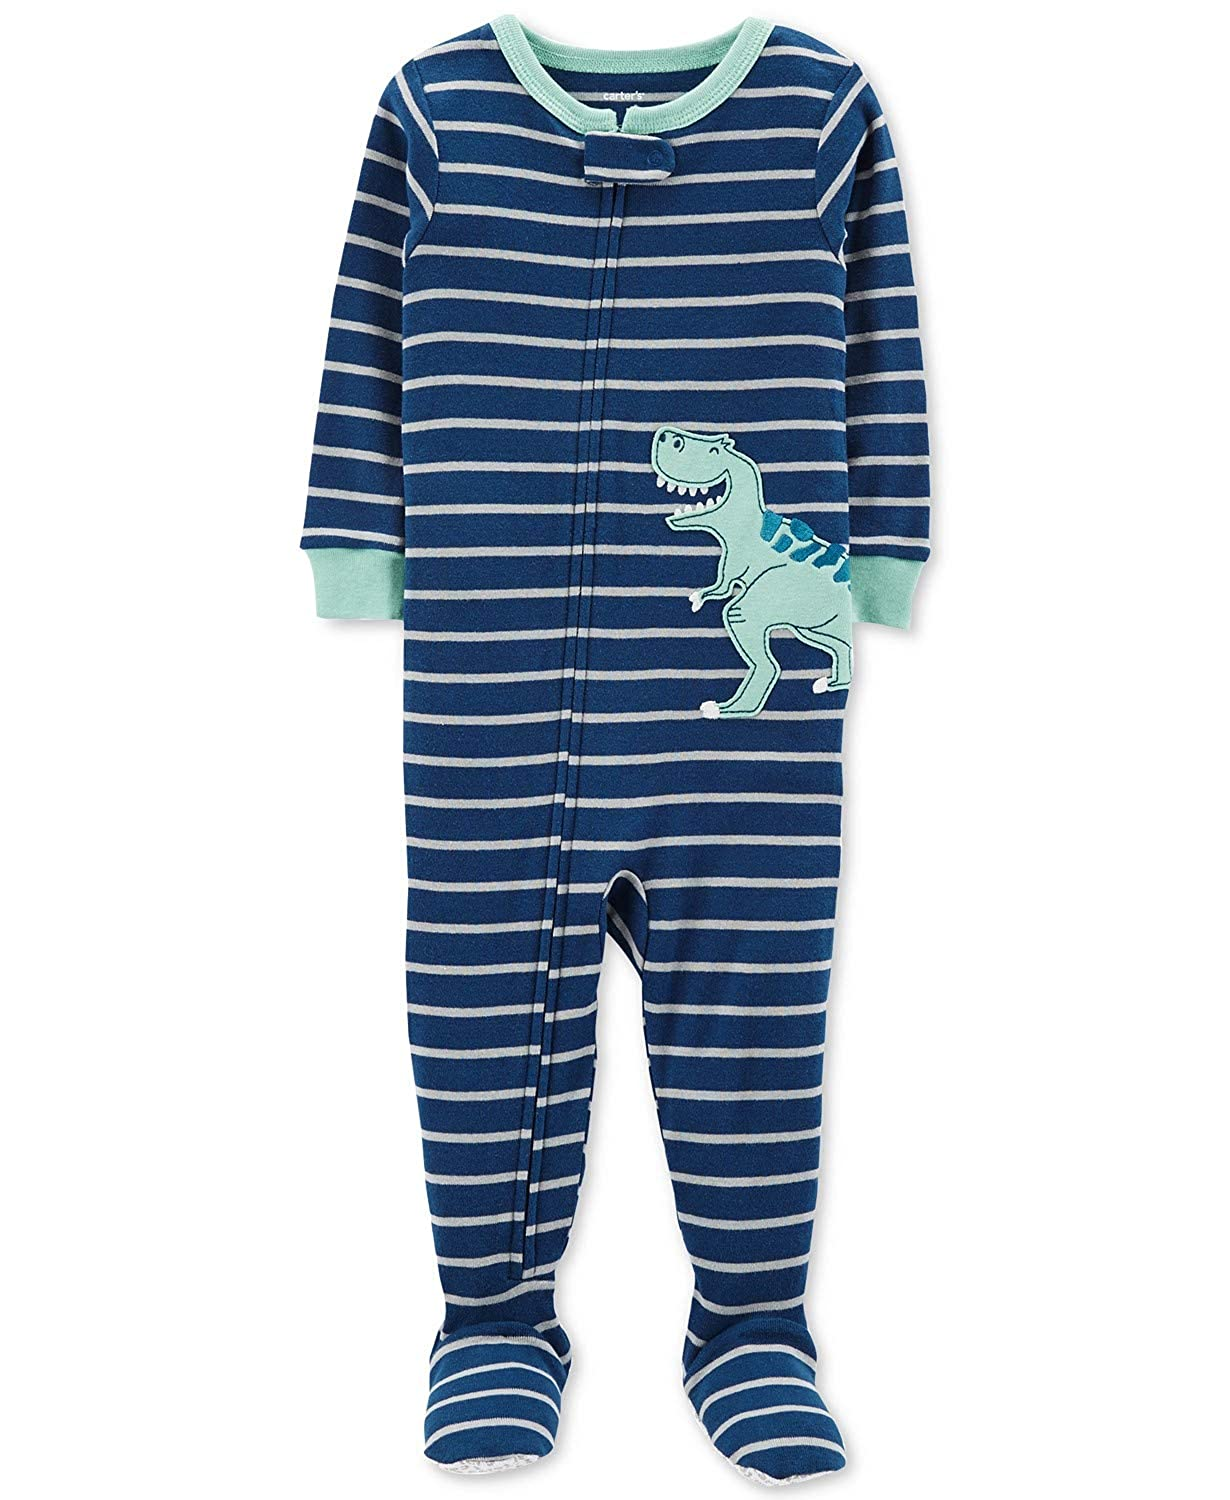 Amazon.com  Carter s Baby Boys  1 Piece Cotton Footed Sleepers  Clothing 7c83d5ab1